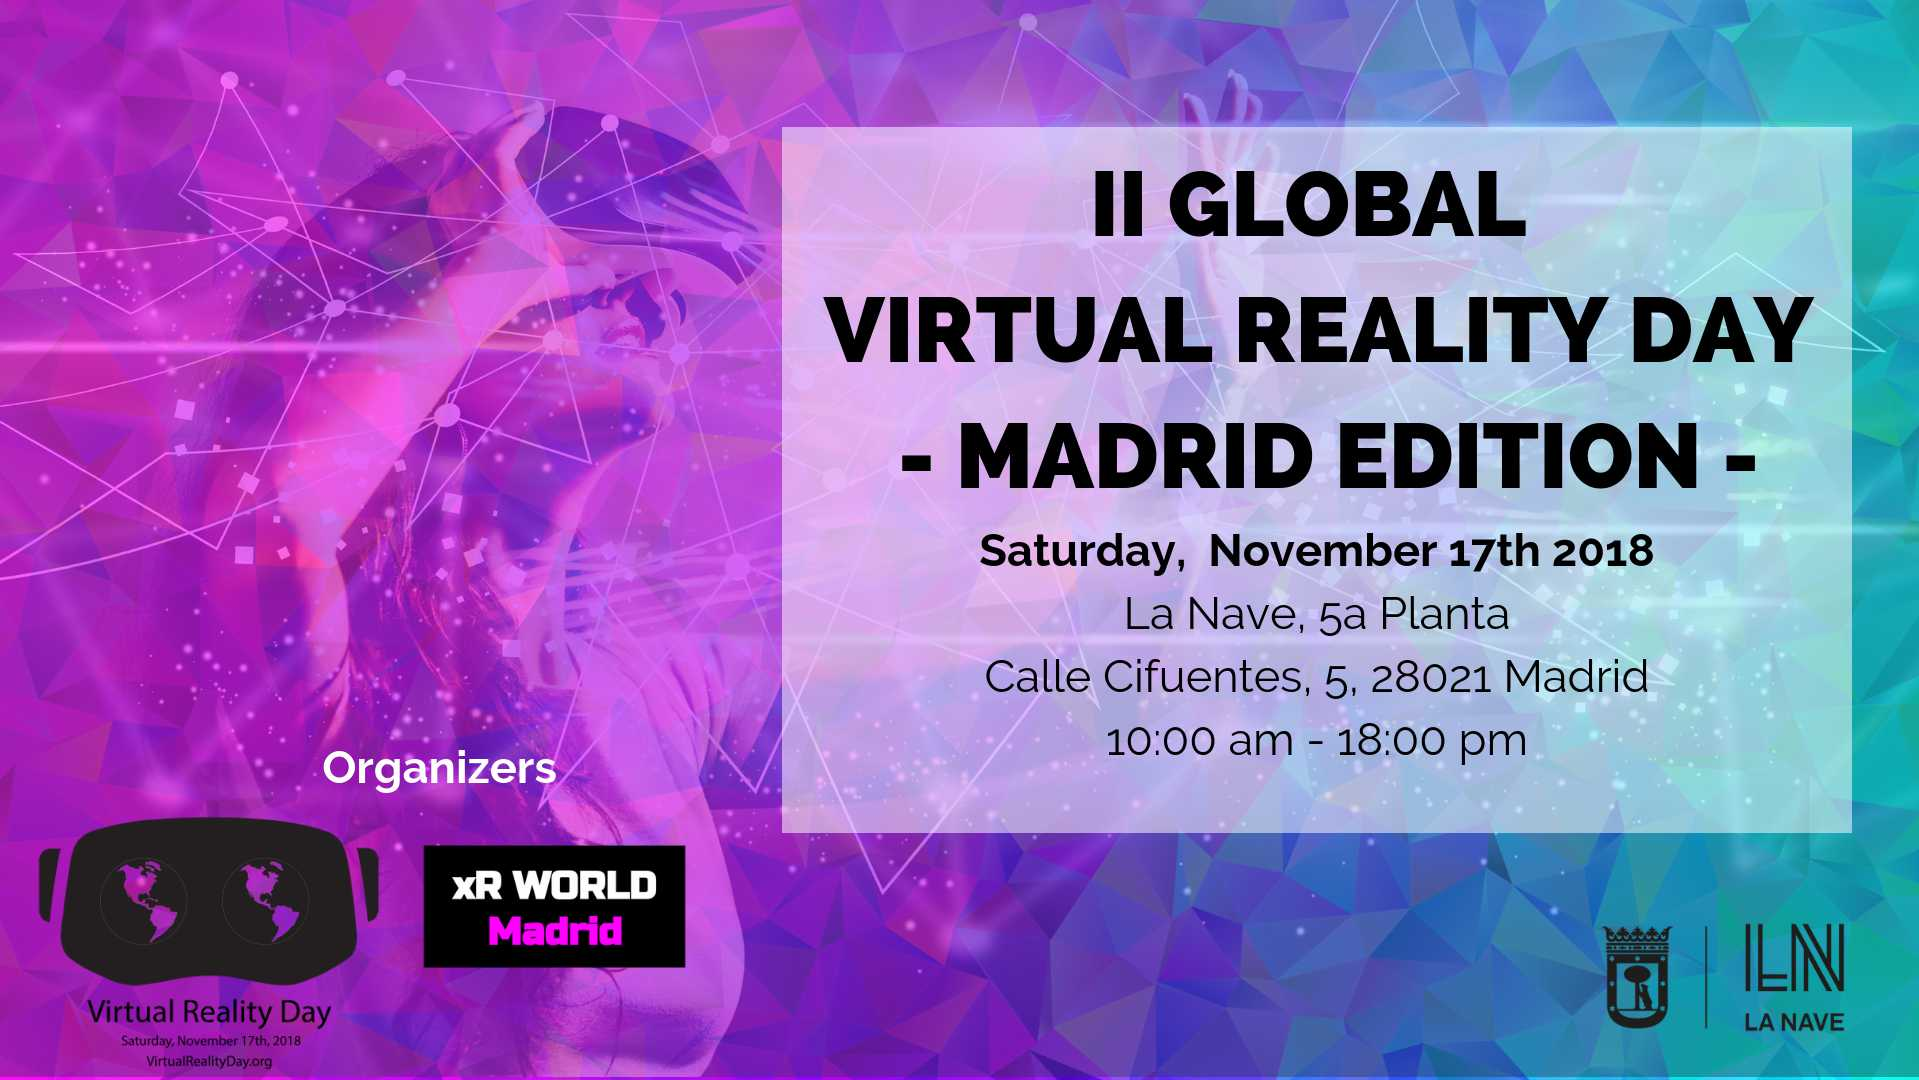 Global Virtual Reality Day: Madrid Edition